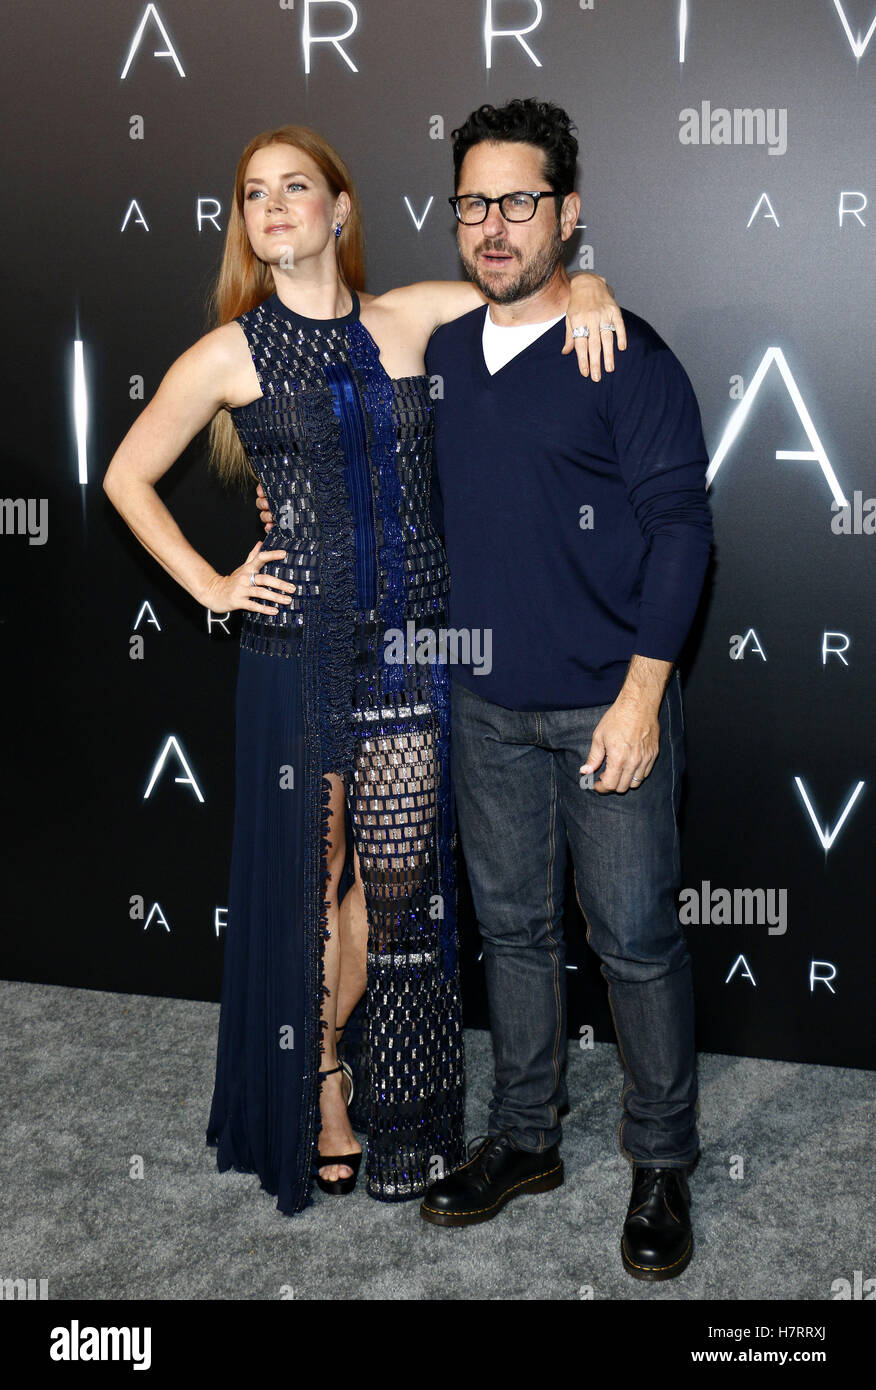 Westwood, USA. 6th Nov, 2016. Amy Adams and J.J. Abrams at the Los Angeles premiere of 'Arrival' held at - Stock Image